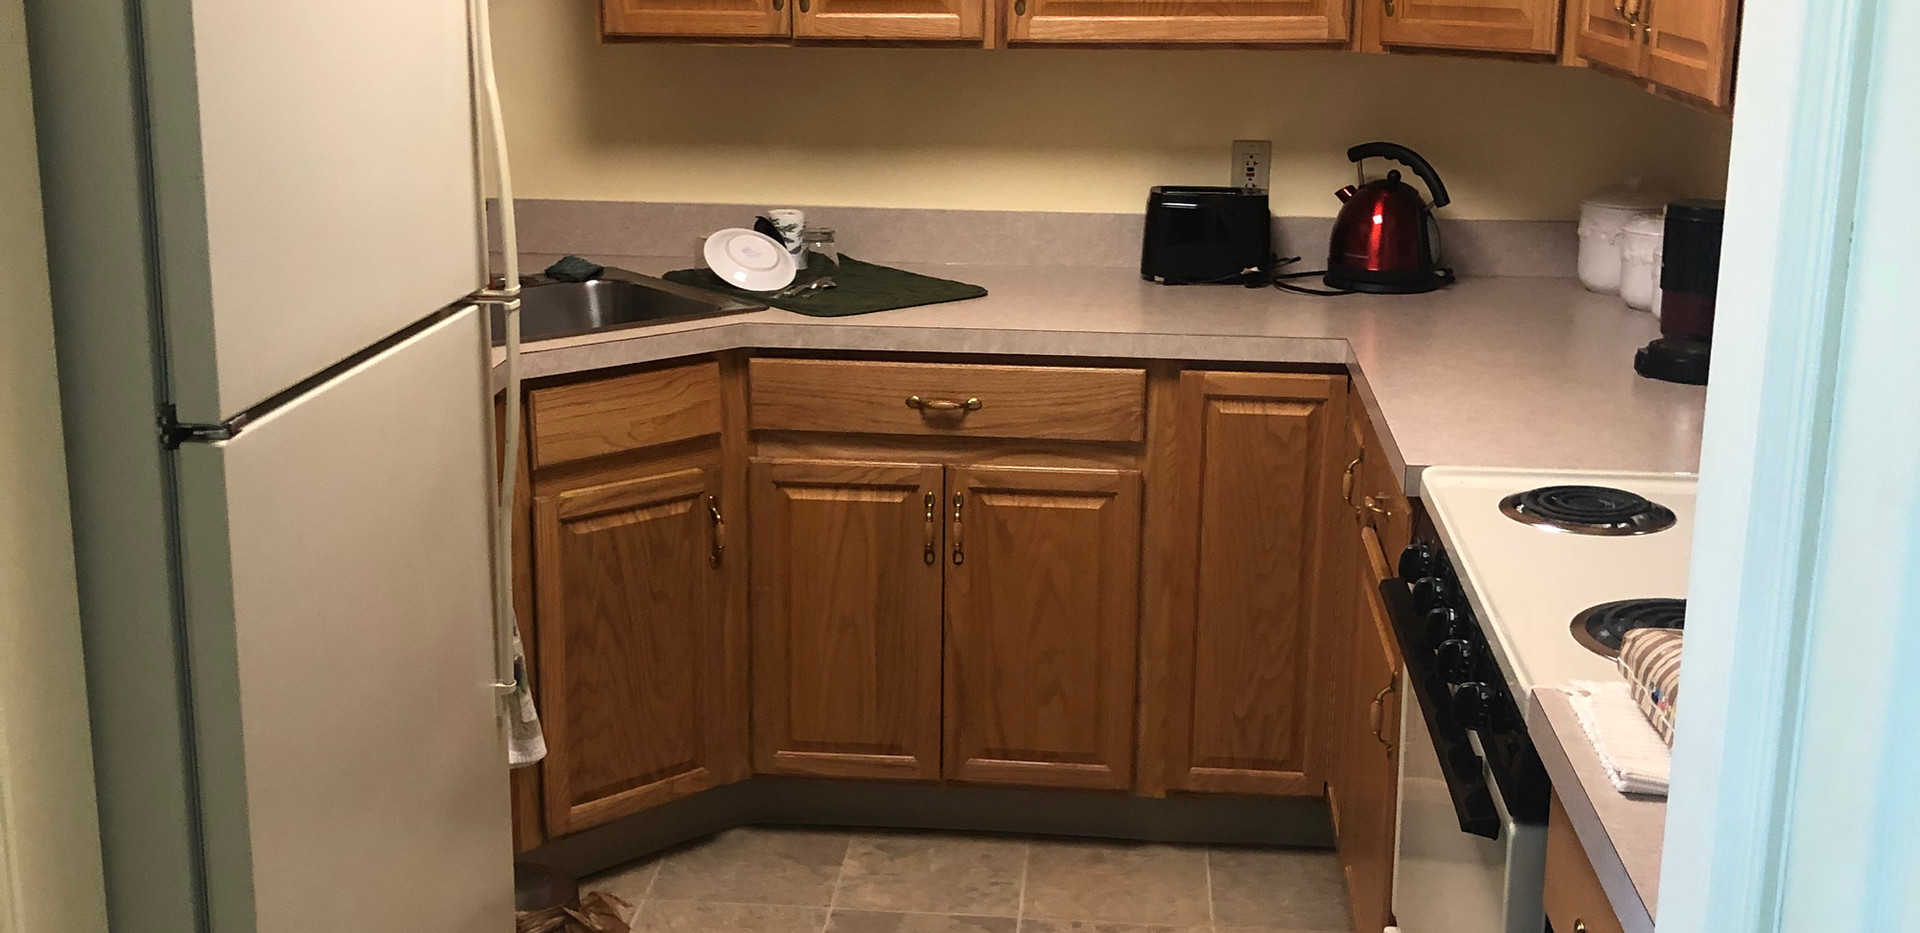 Kitchen 2 bedroom apartment.jpg